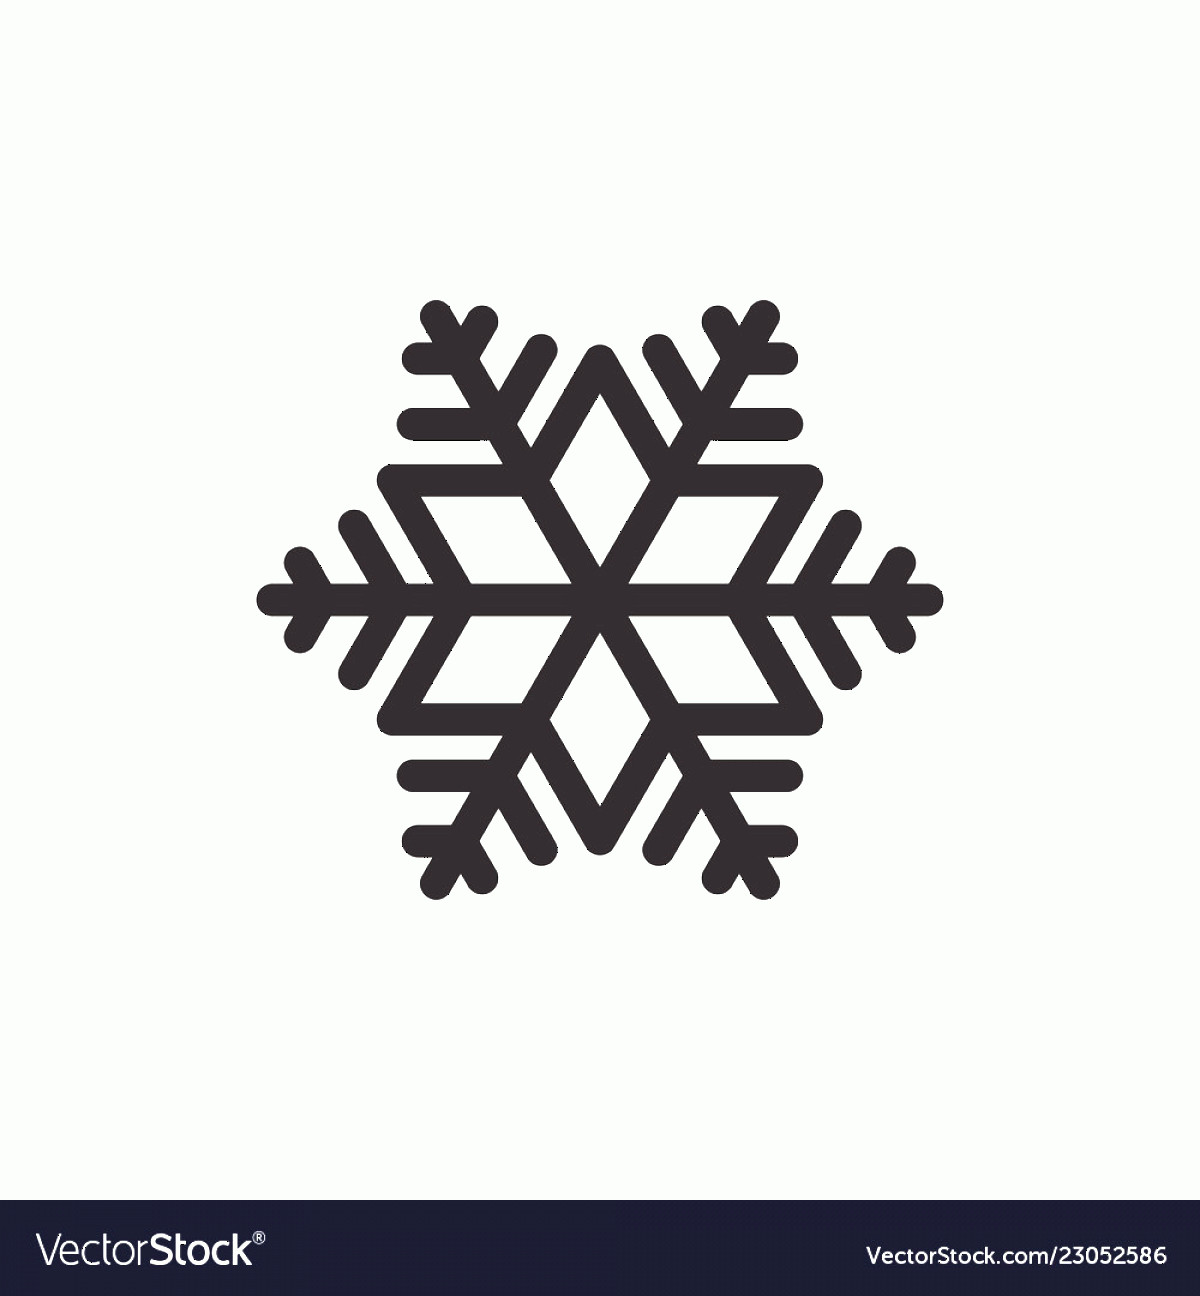 Simple Black Vector Snowflake: Simple Black Snowflake Icon Graphic Isolated Vector